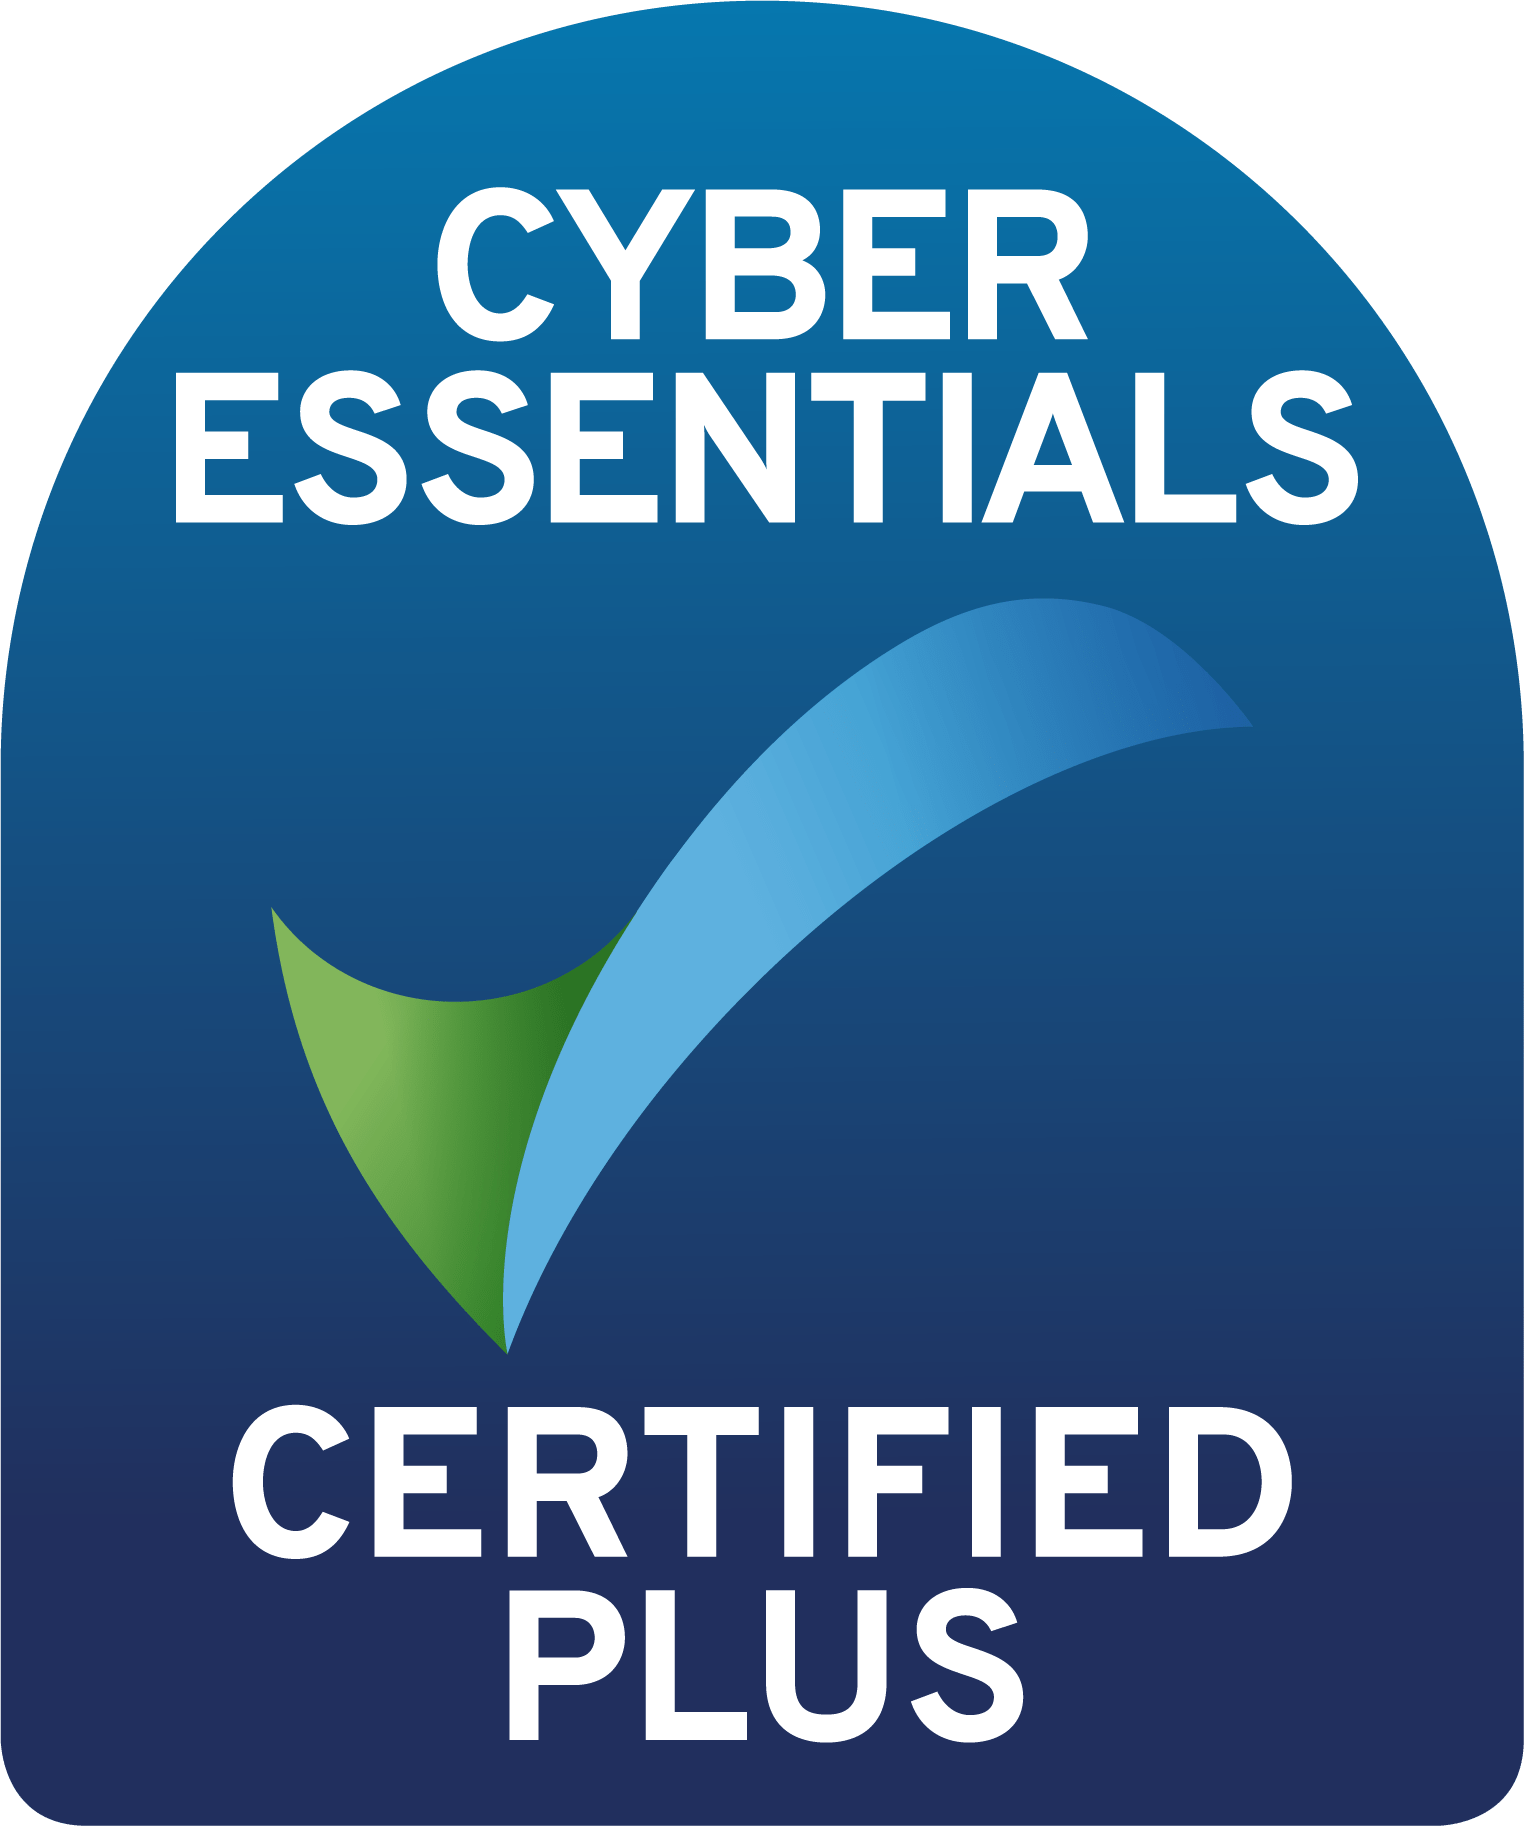 Cyberessentials Certification Plus